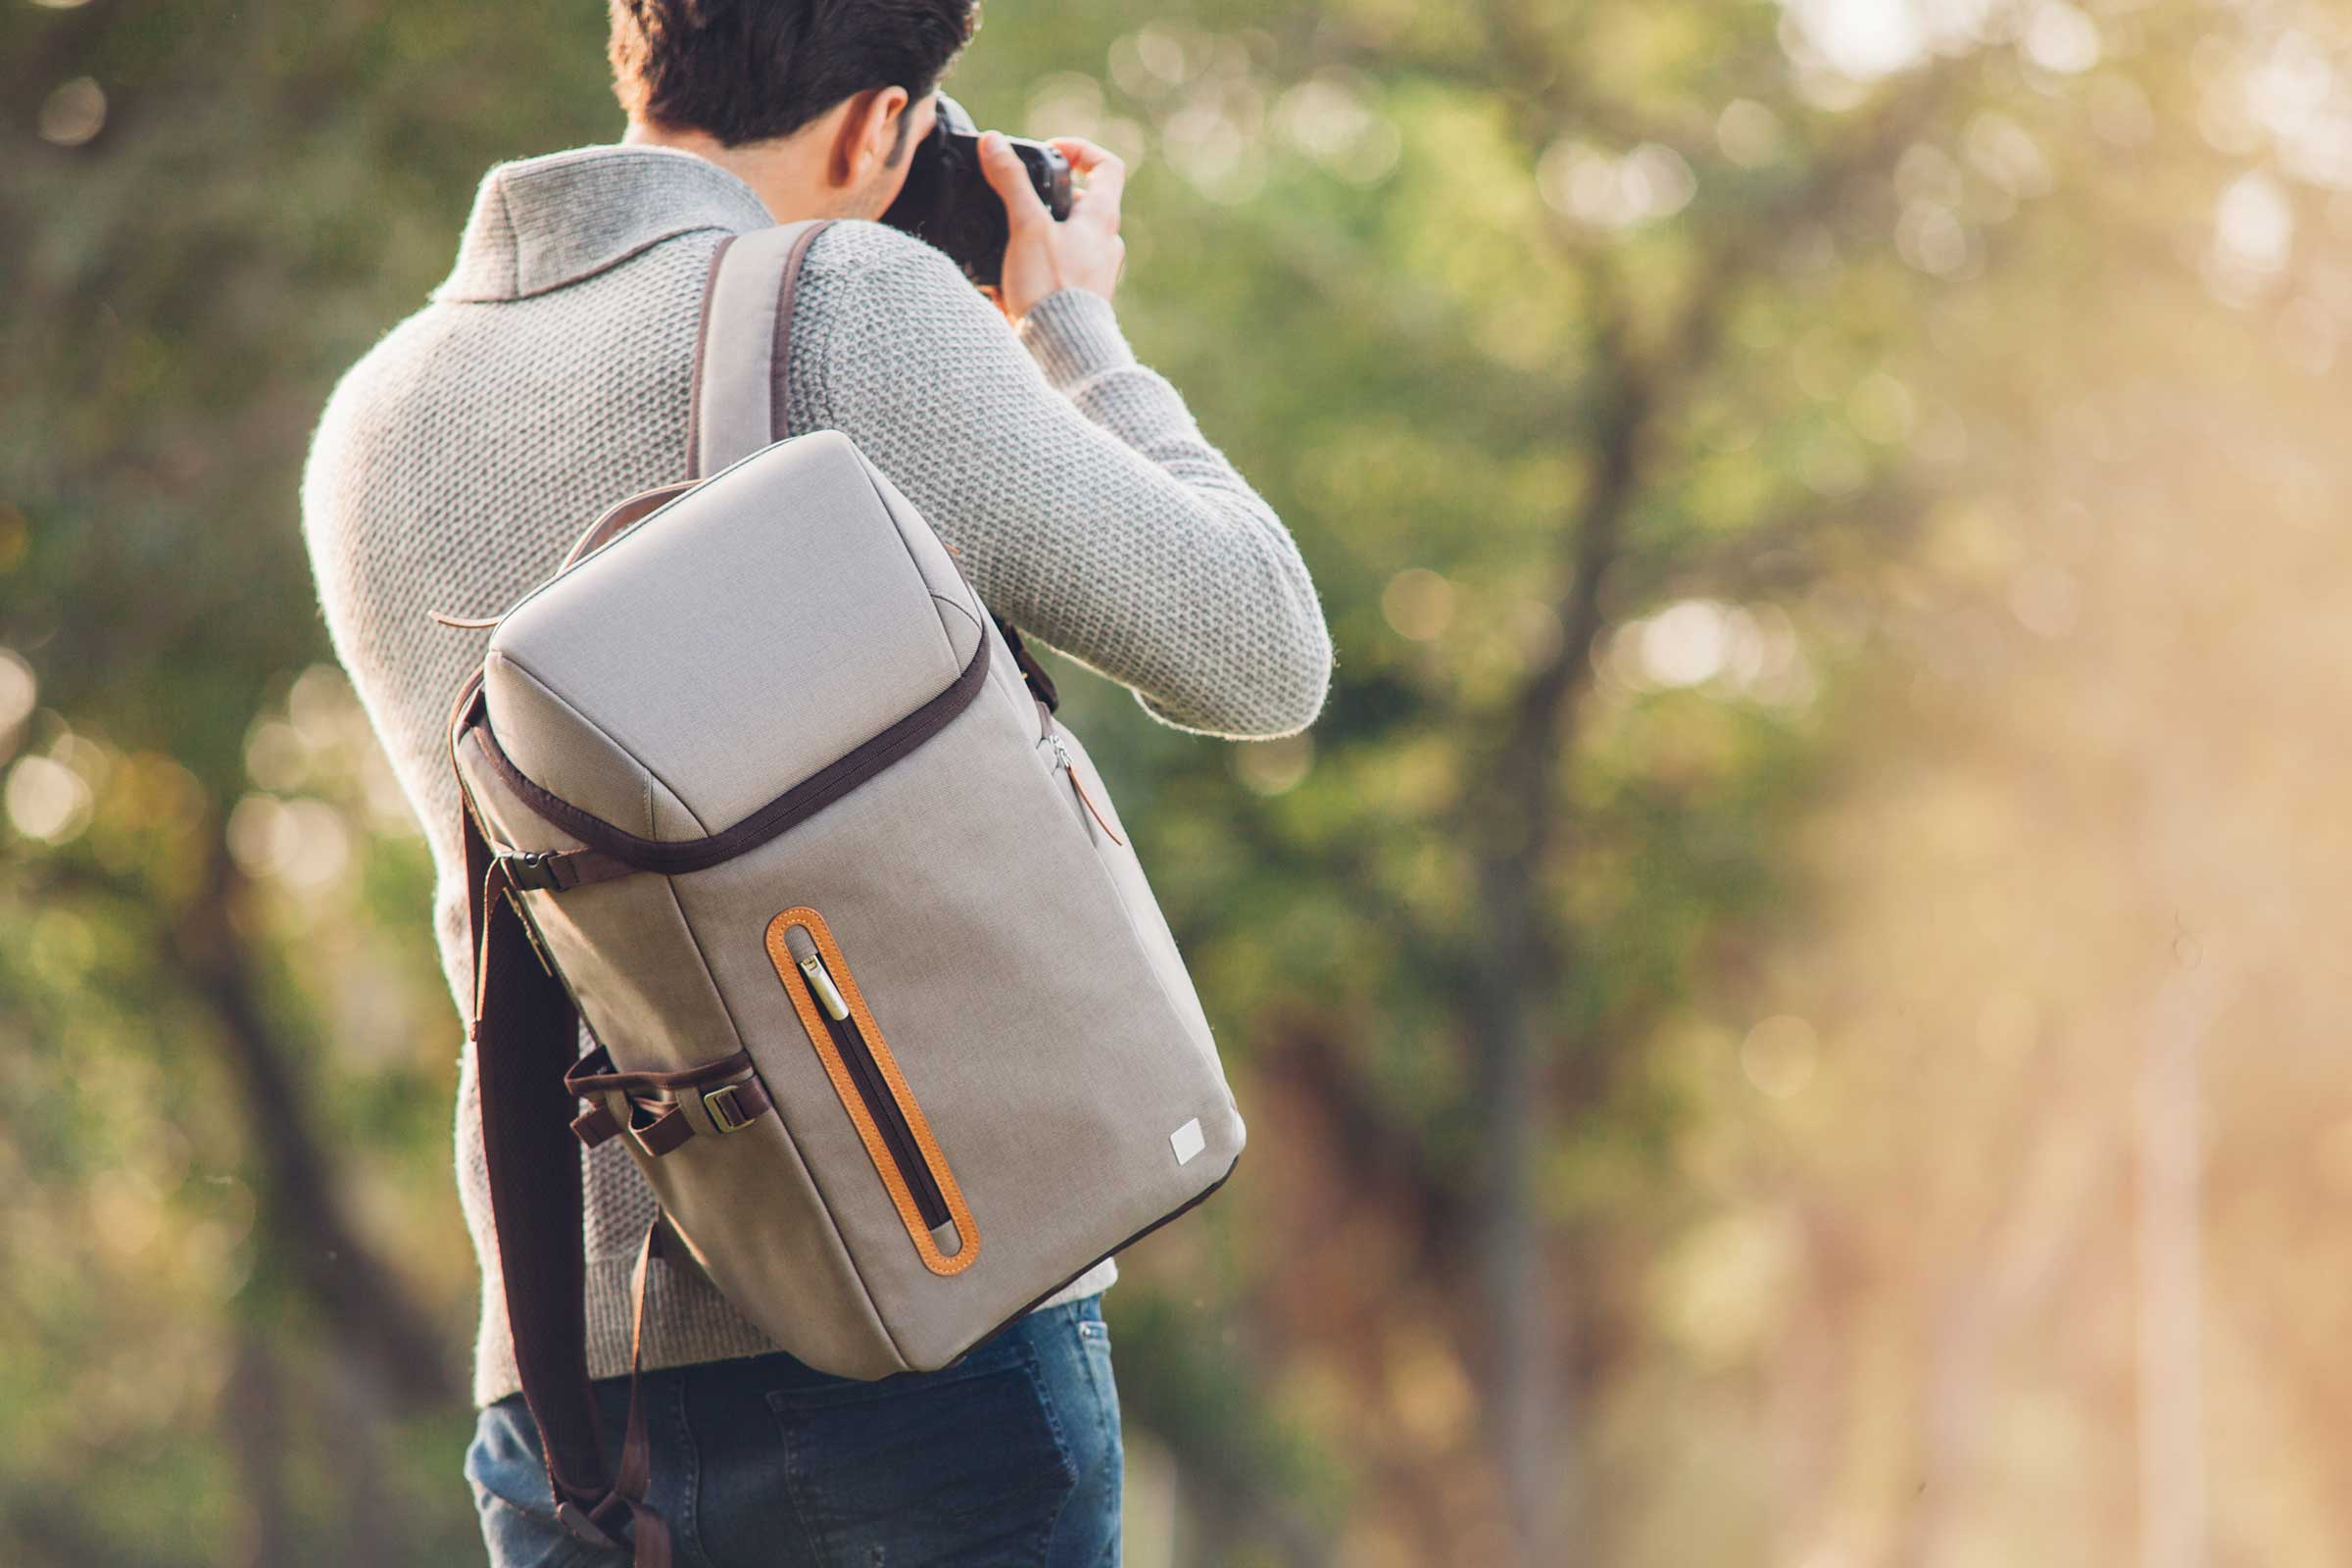 Must-have accessories for photographers